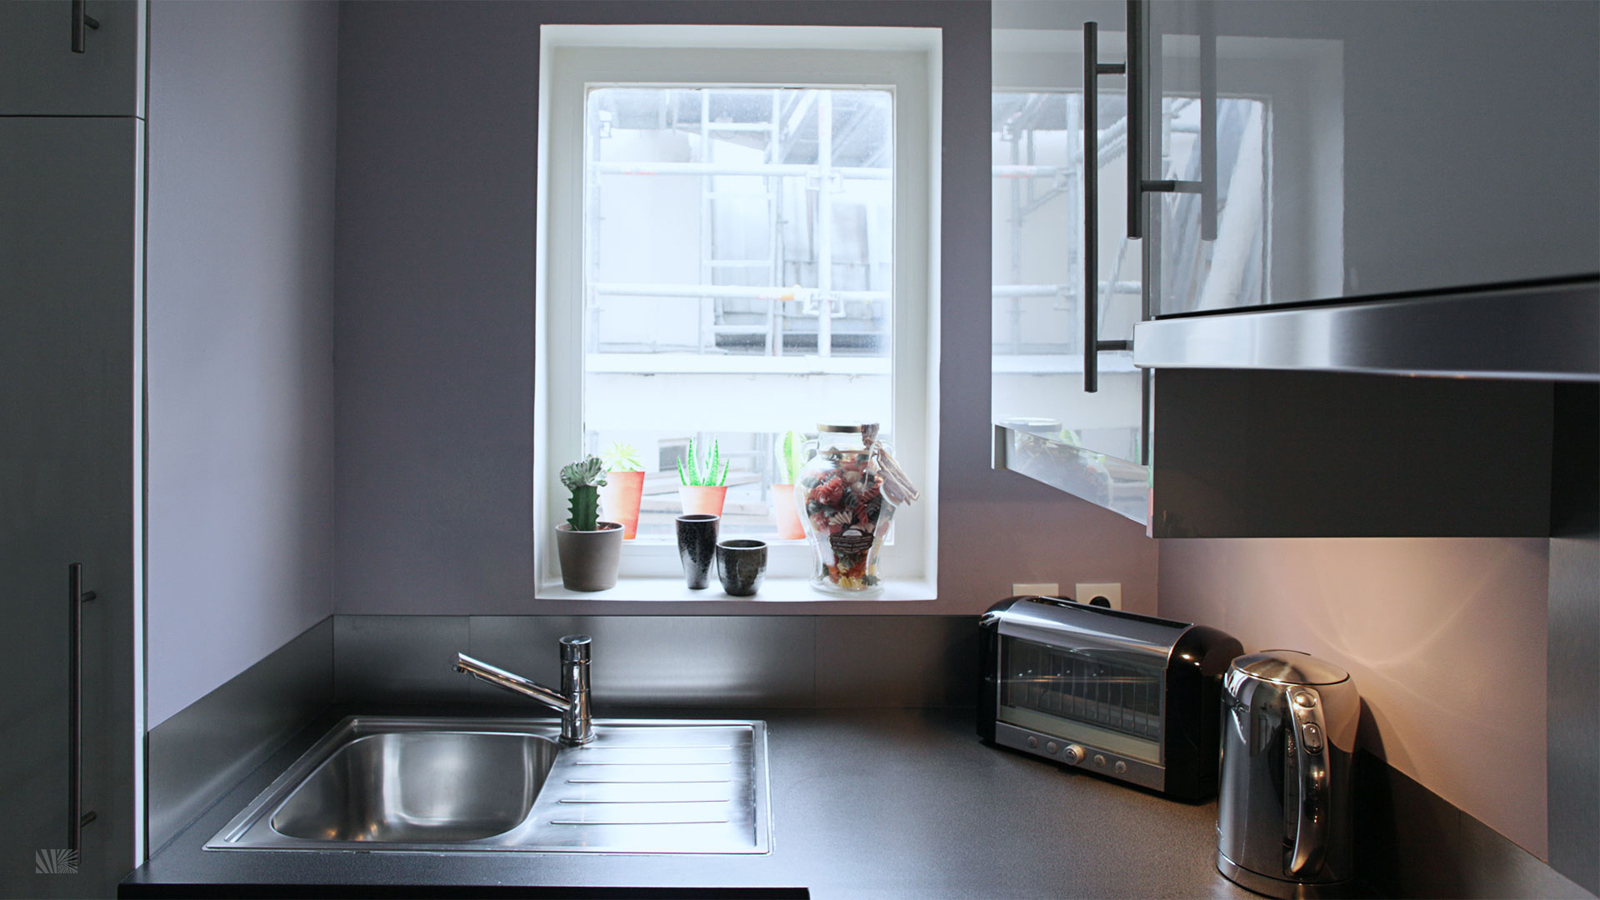 Stylish ikea kitchen for small space - Small spaces ikea photos ...